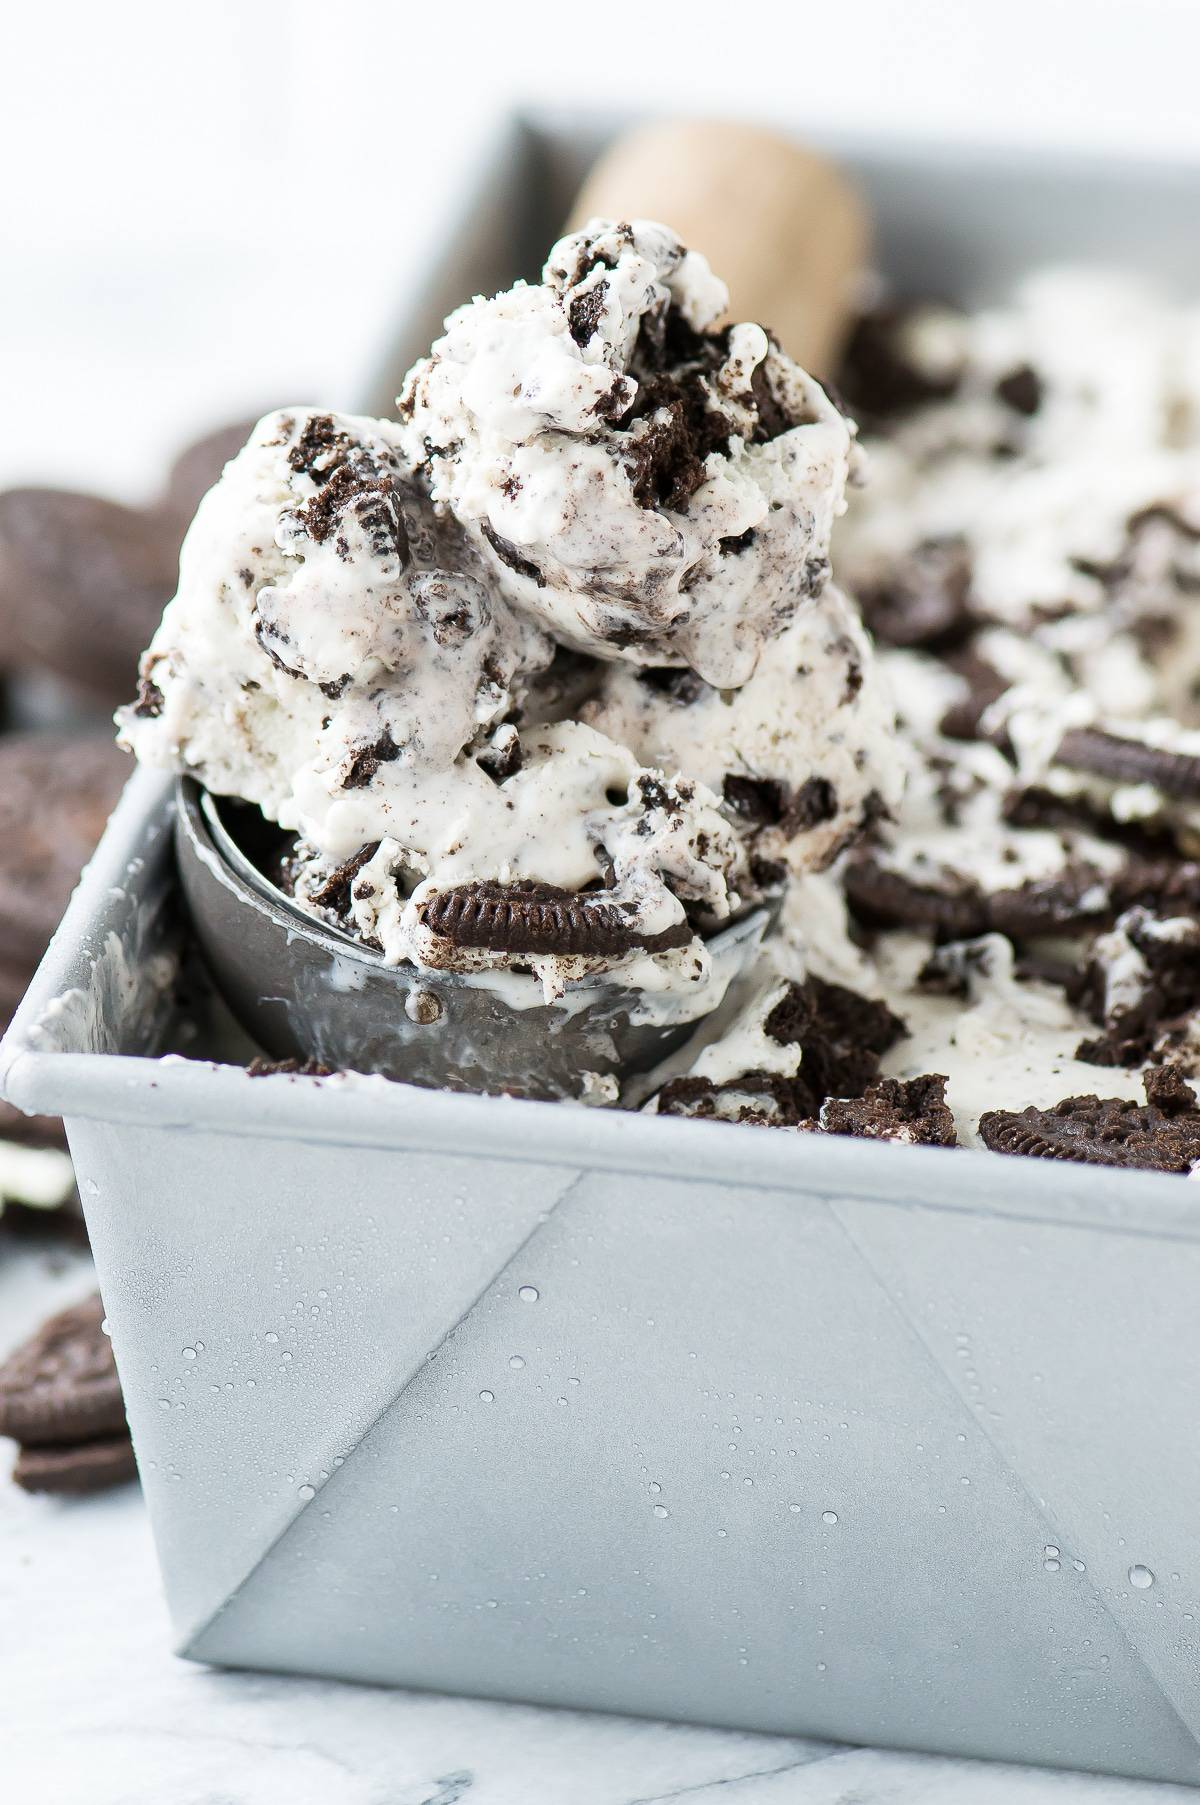 Scooping 3 Ingredient Oreo Ice Cream from a cake pan.